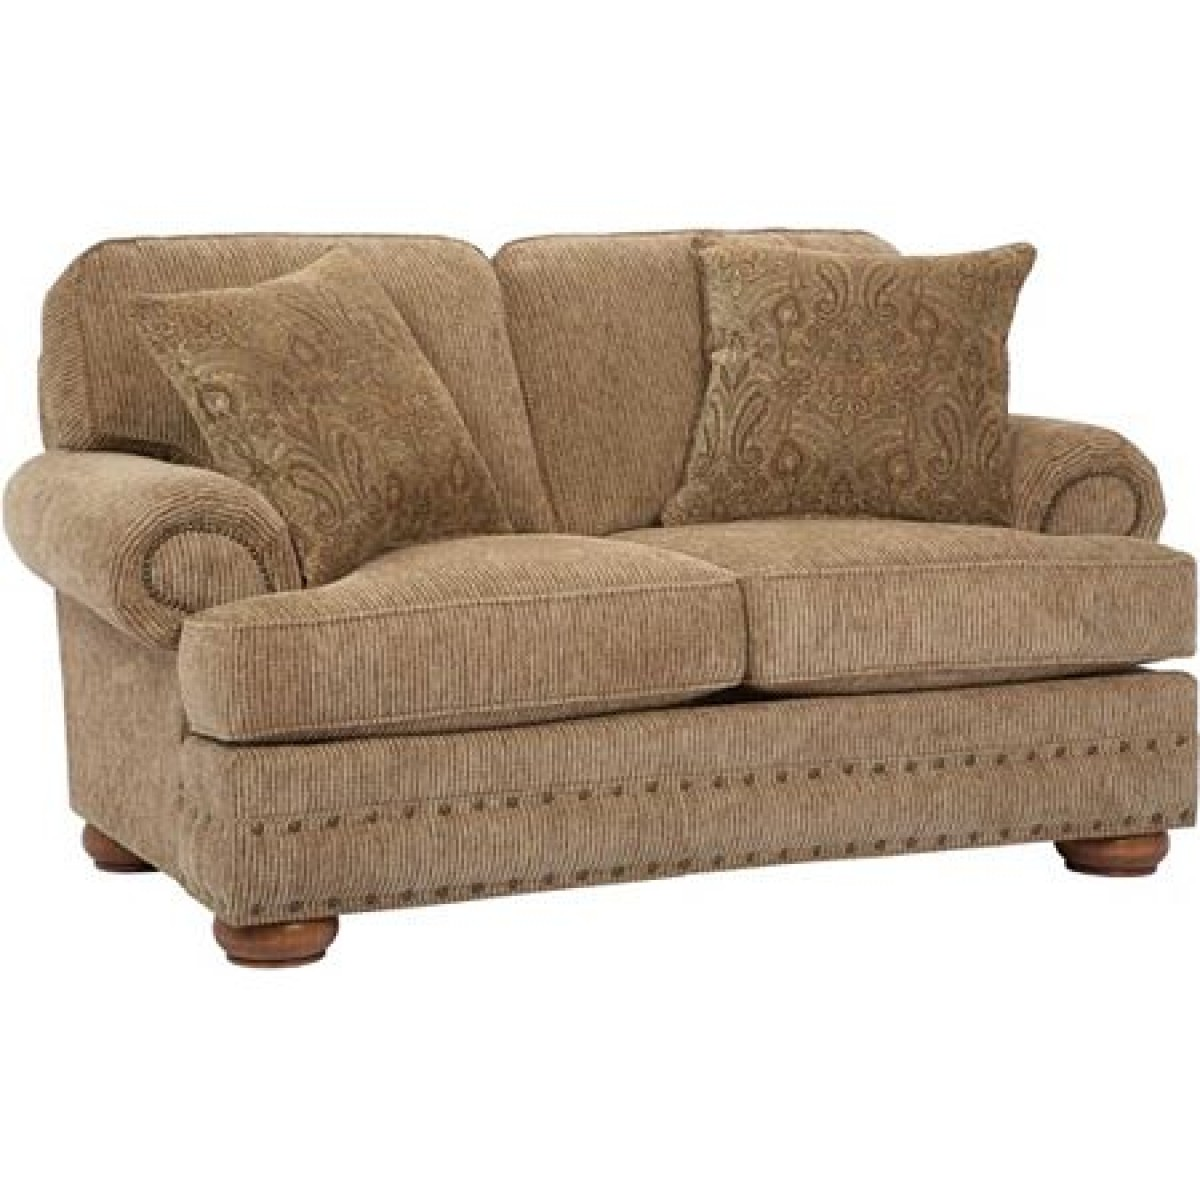 Give yourself the best rest and relaxation soft comfortable couches and loveseats couch Couches and loveseats